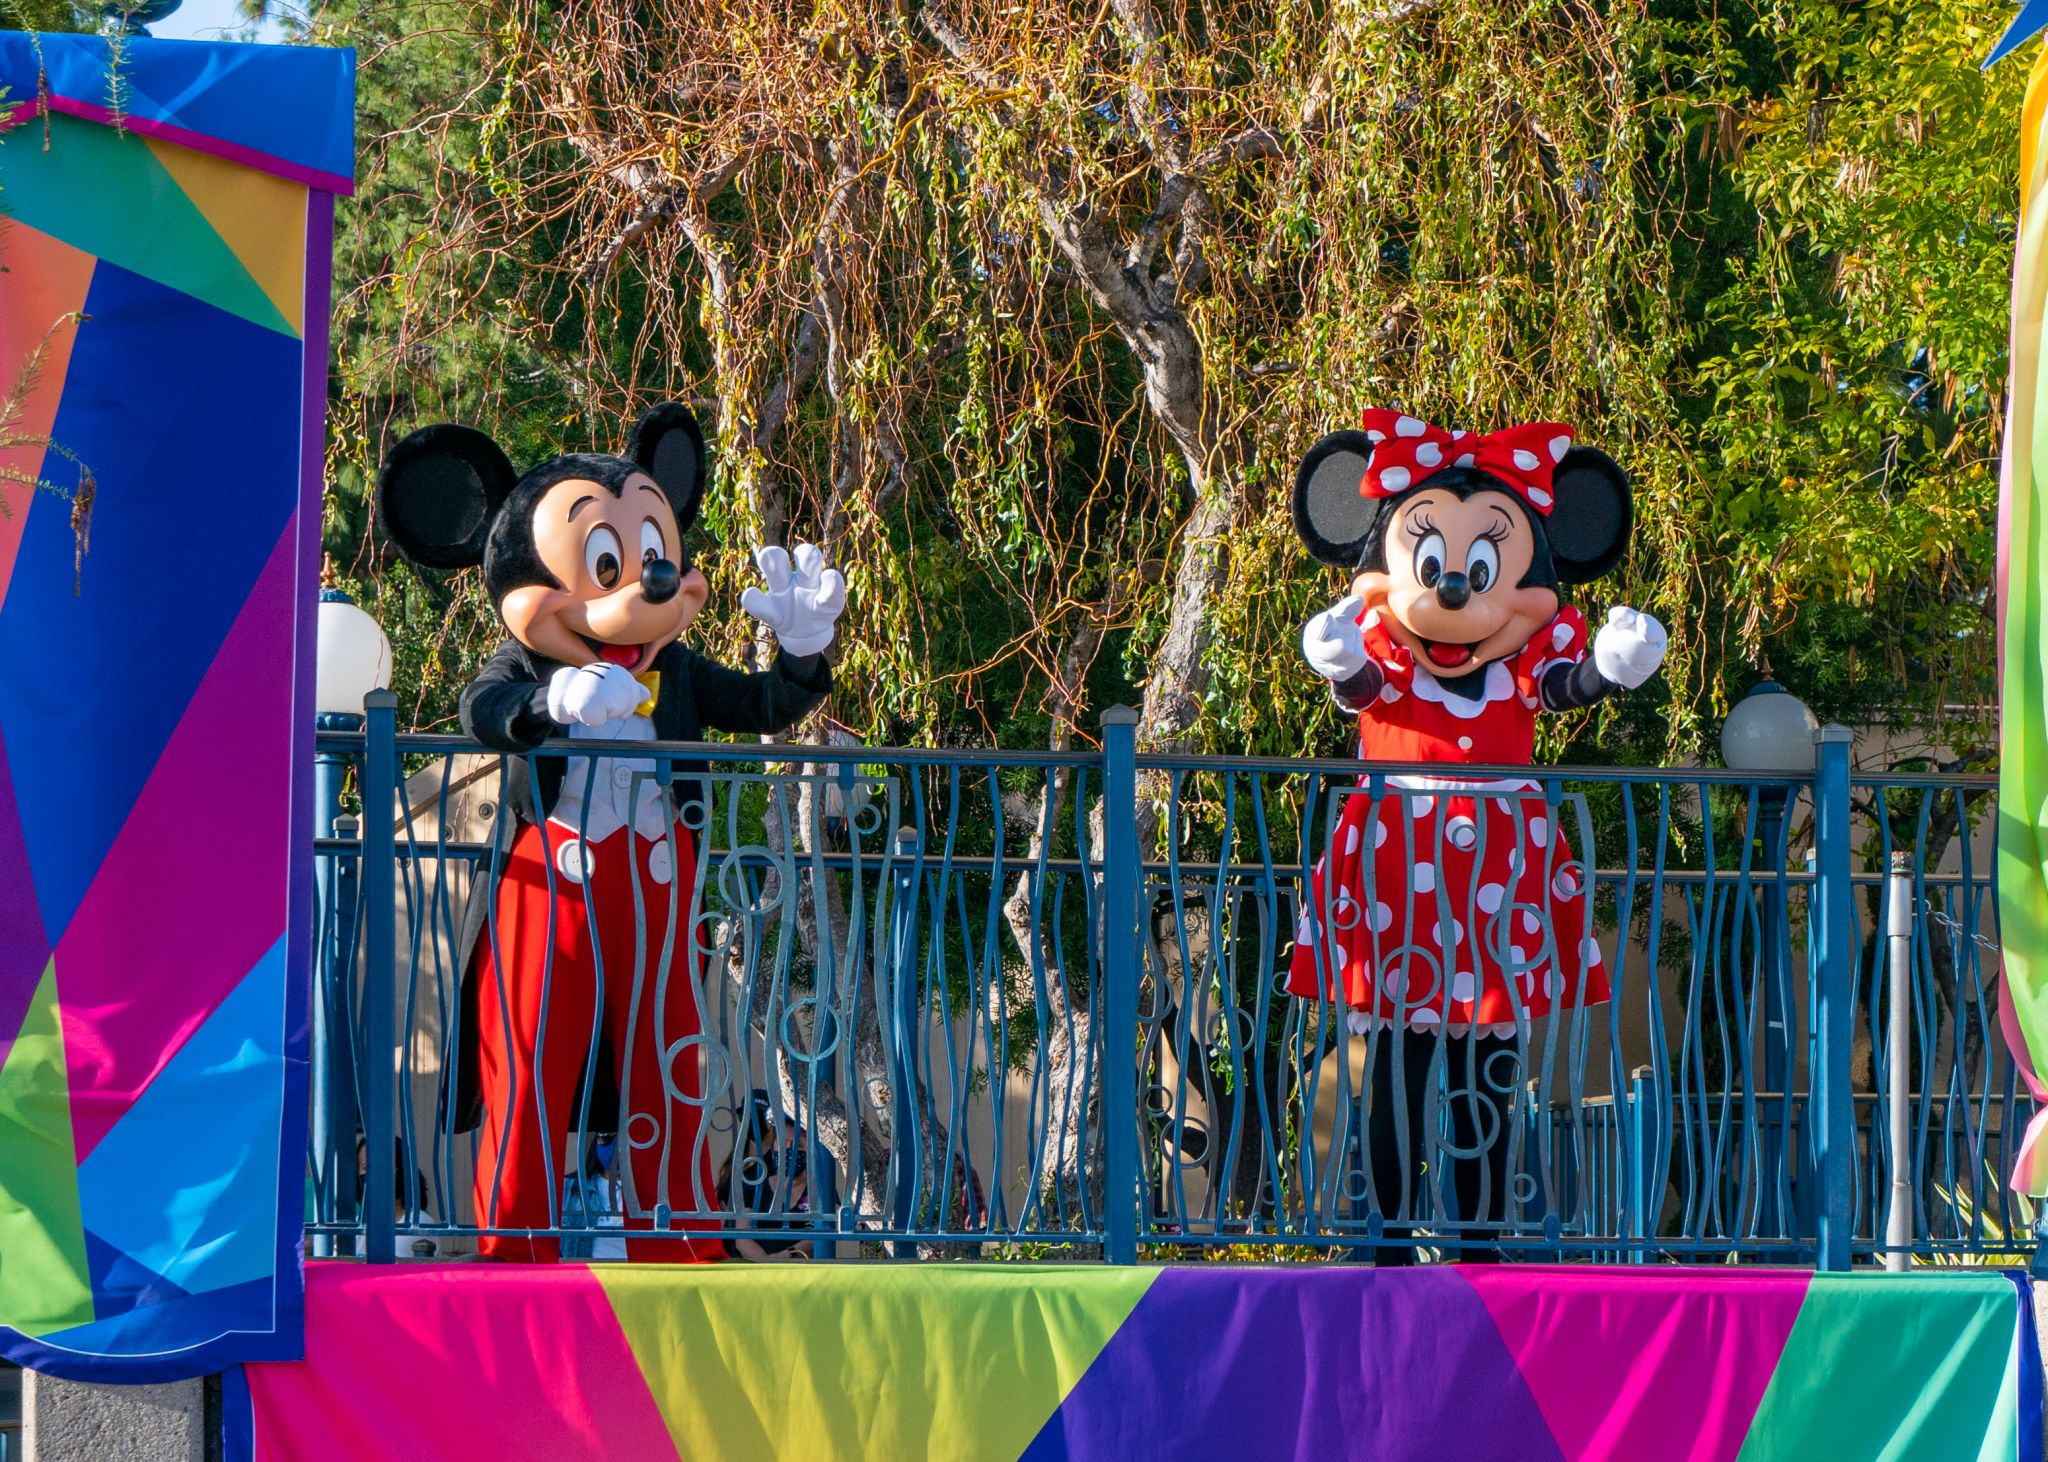 Disneyland can let in non-California residents, but won't yet